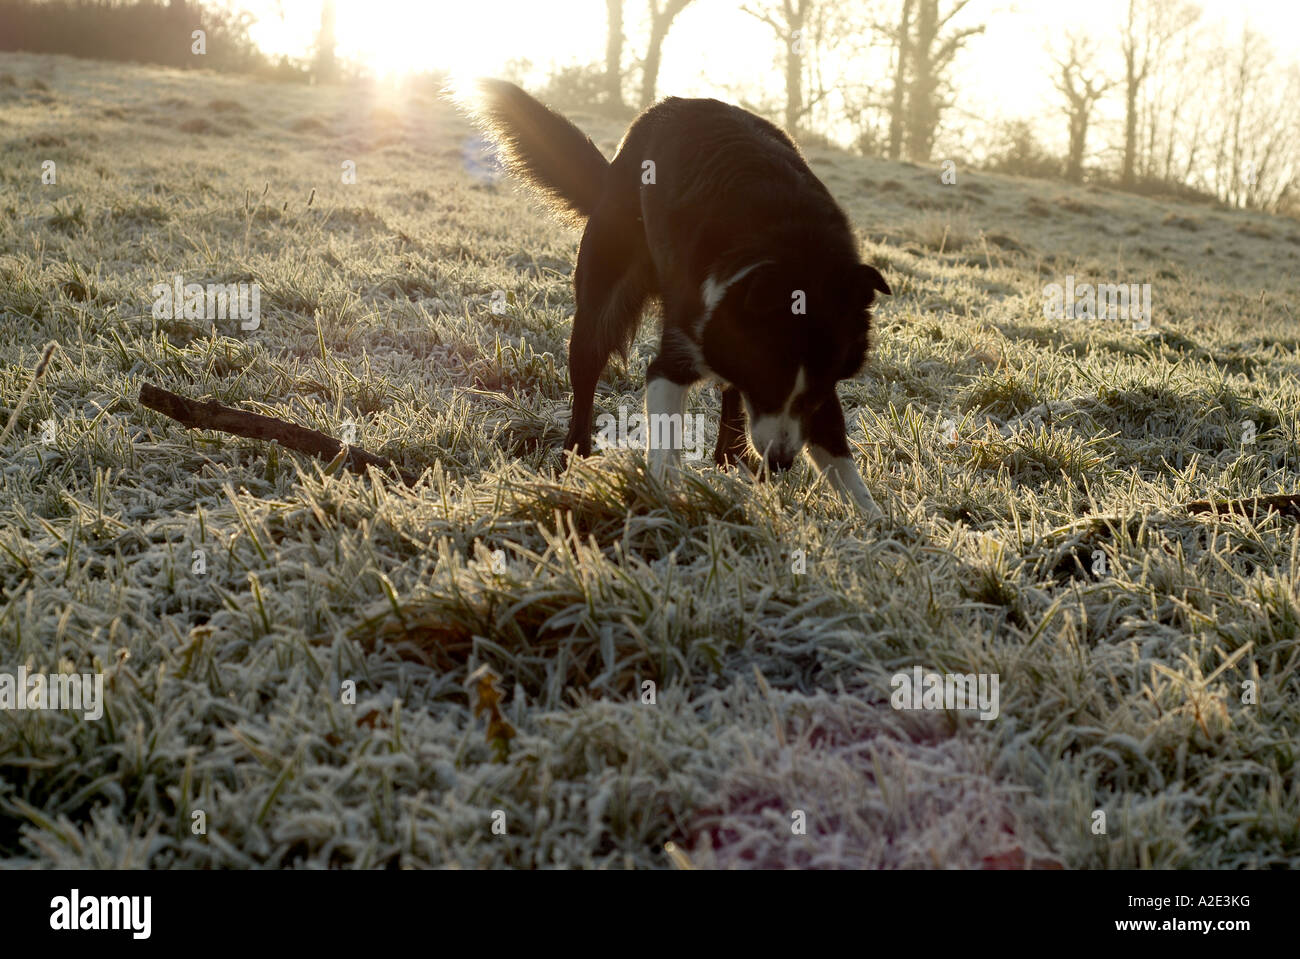 sheep dog in frosted field biting at stick - Stock Image